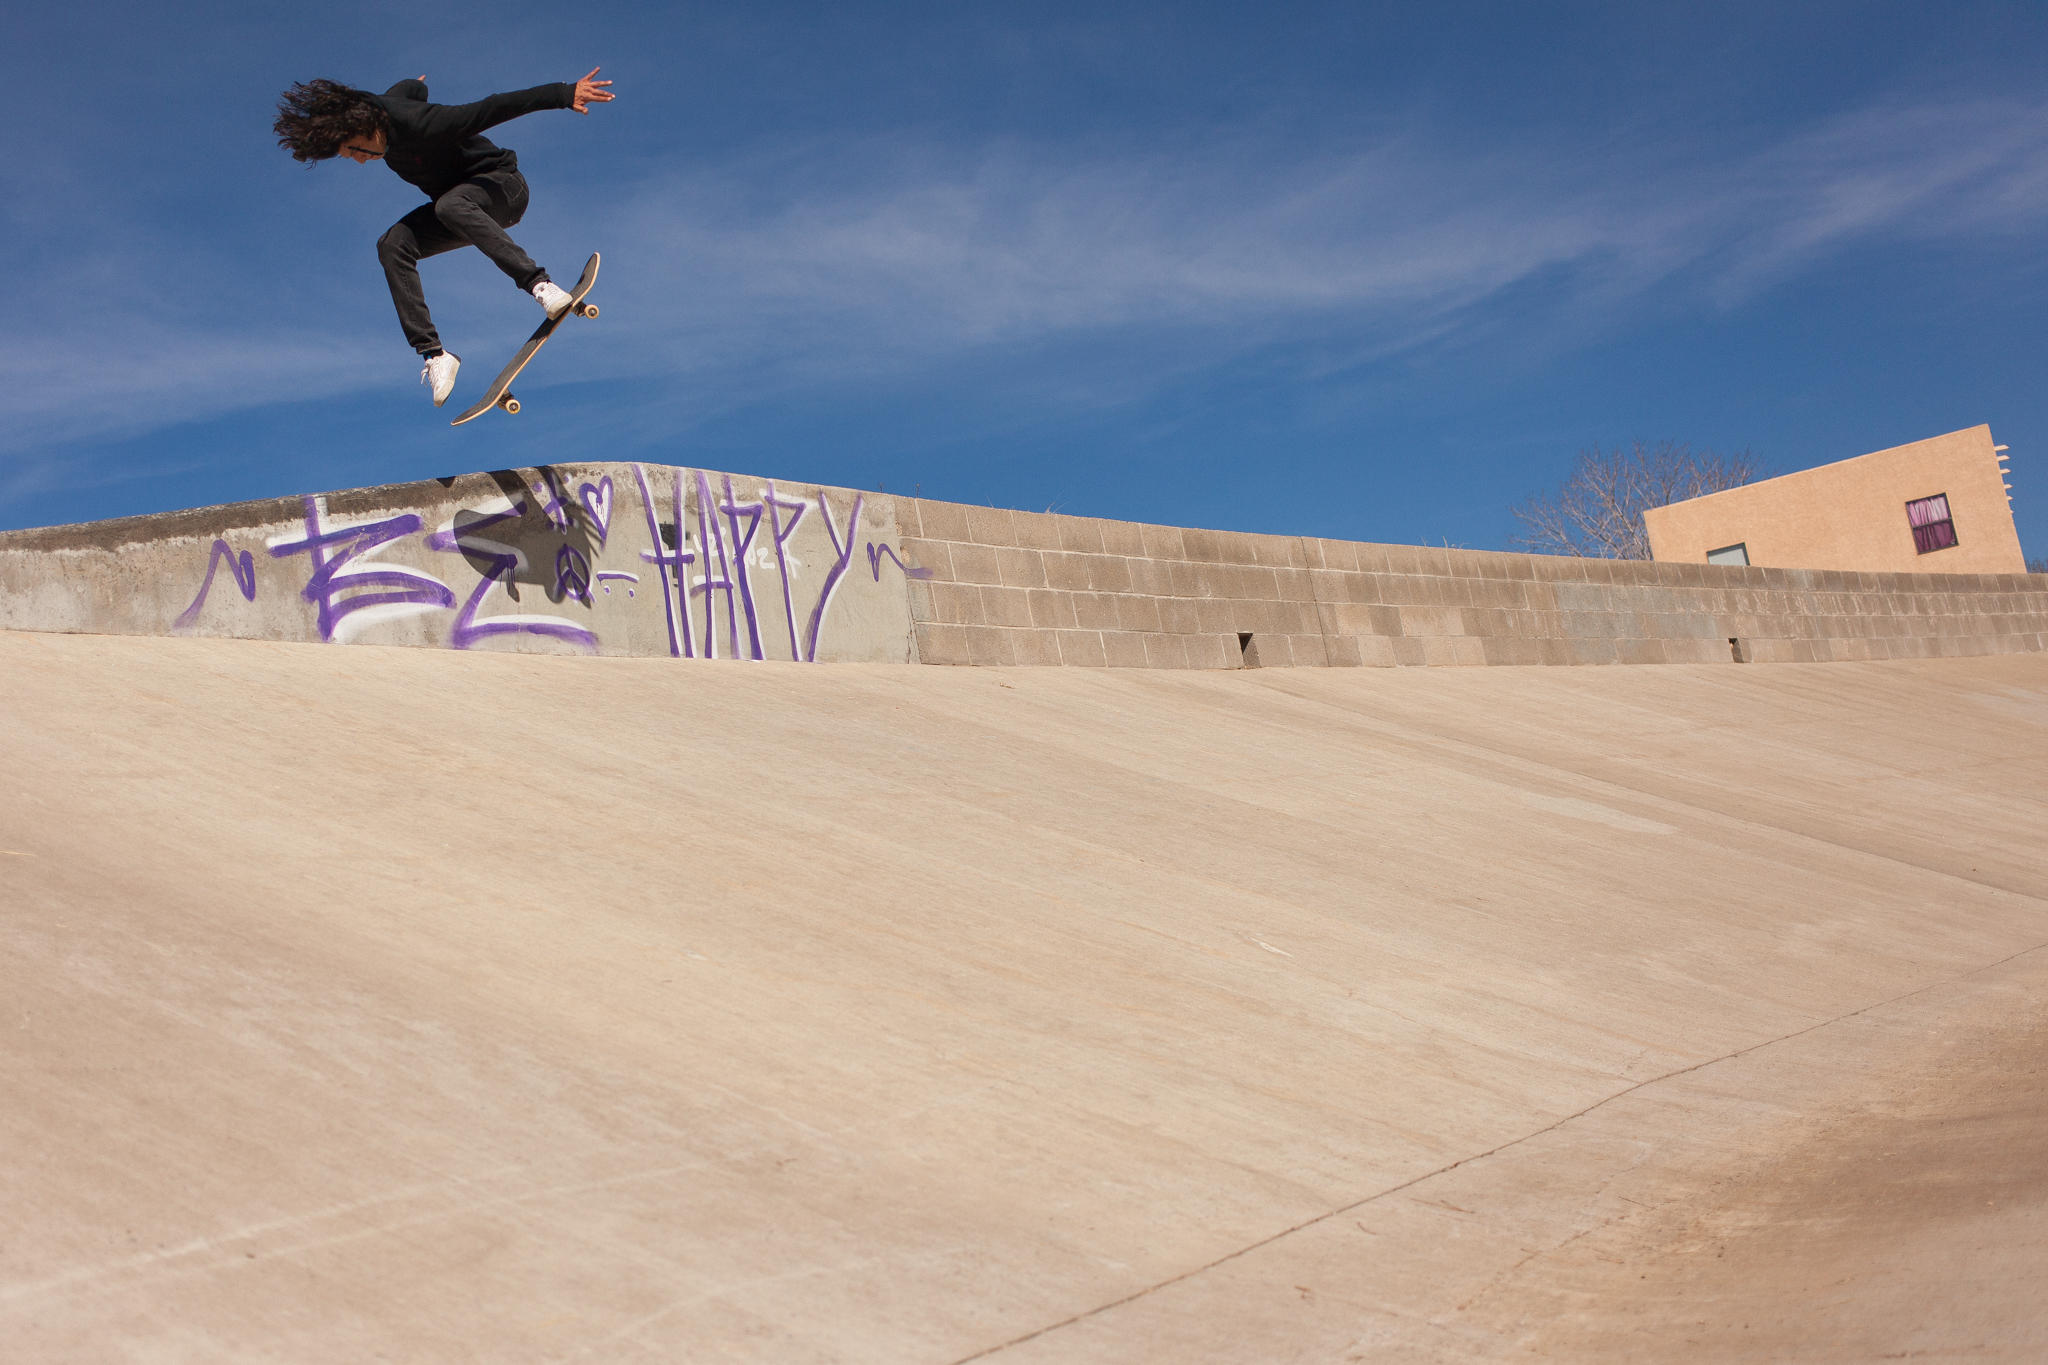 Jake Johnson / B/S 360 / Albuquerque, New Mexico